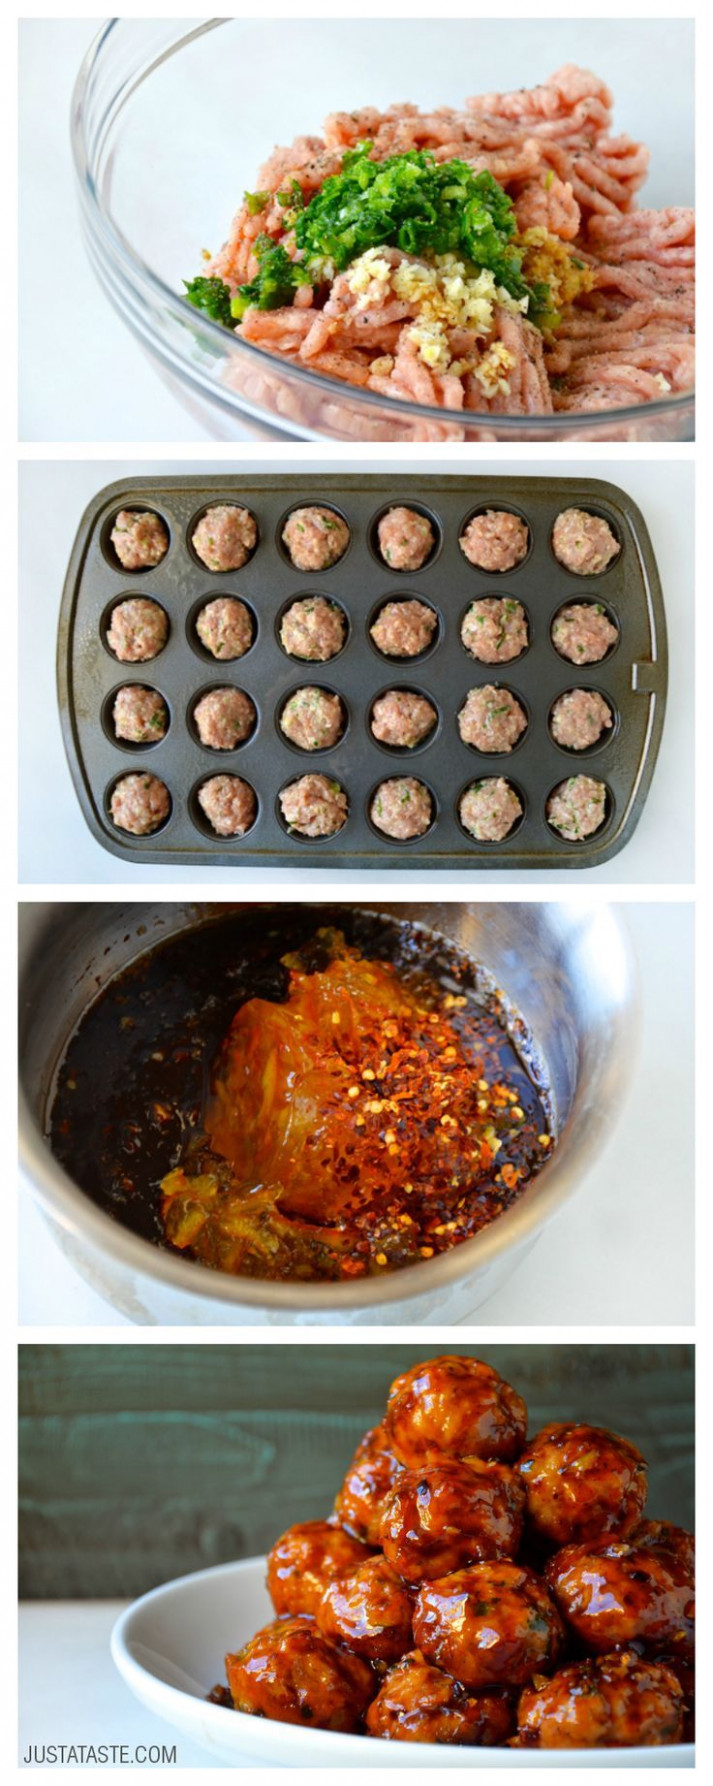 Best 25+ Chicken meatball recipes ideas on Pinterest ...